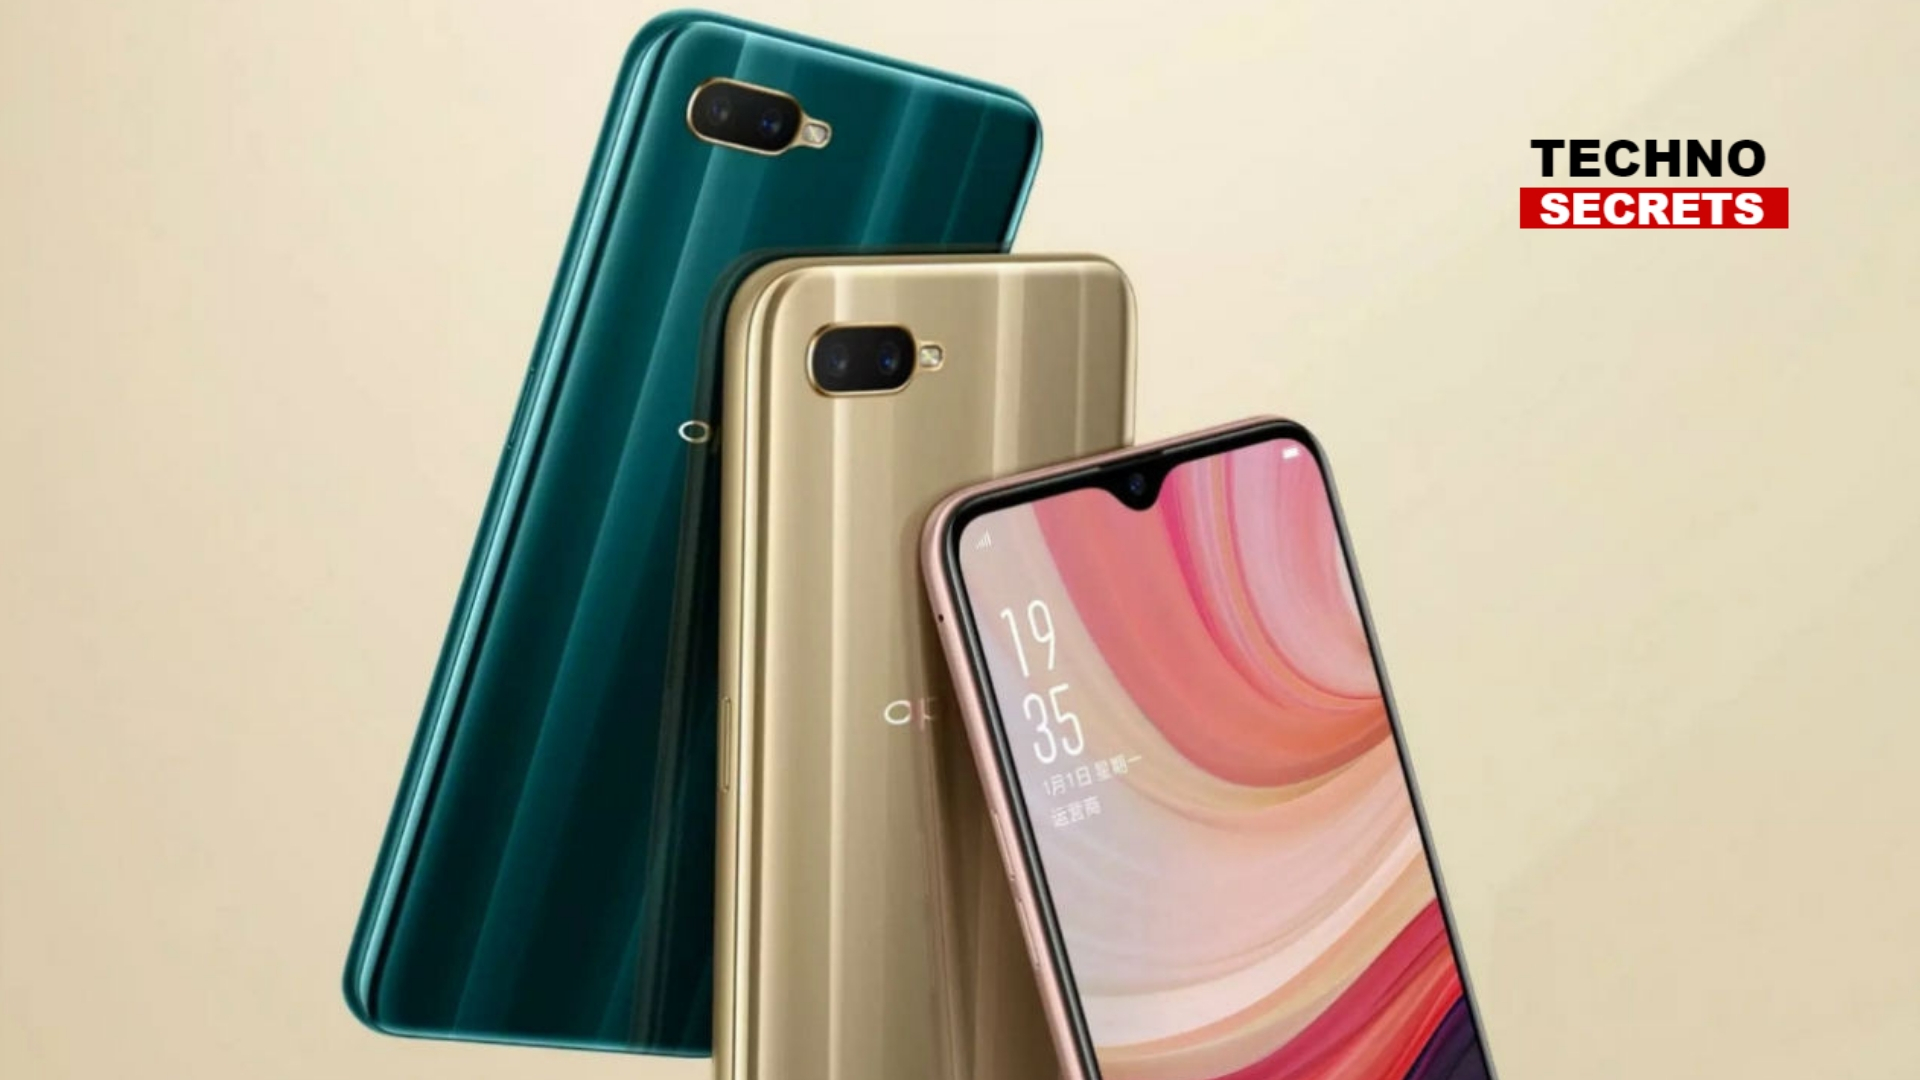 Oppo A7 To Go On Sale From November 27, Expected To Be Priced At Rs 16,999